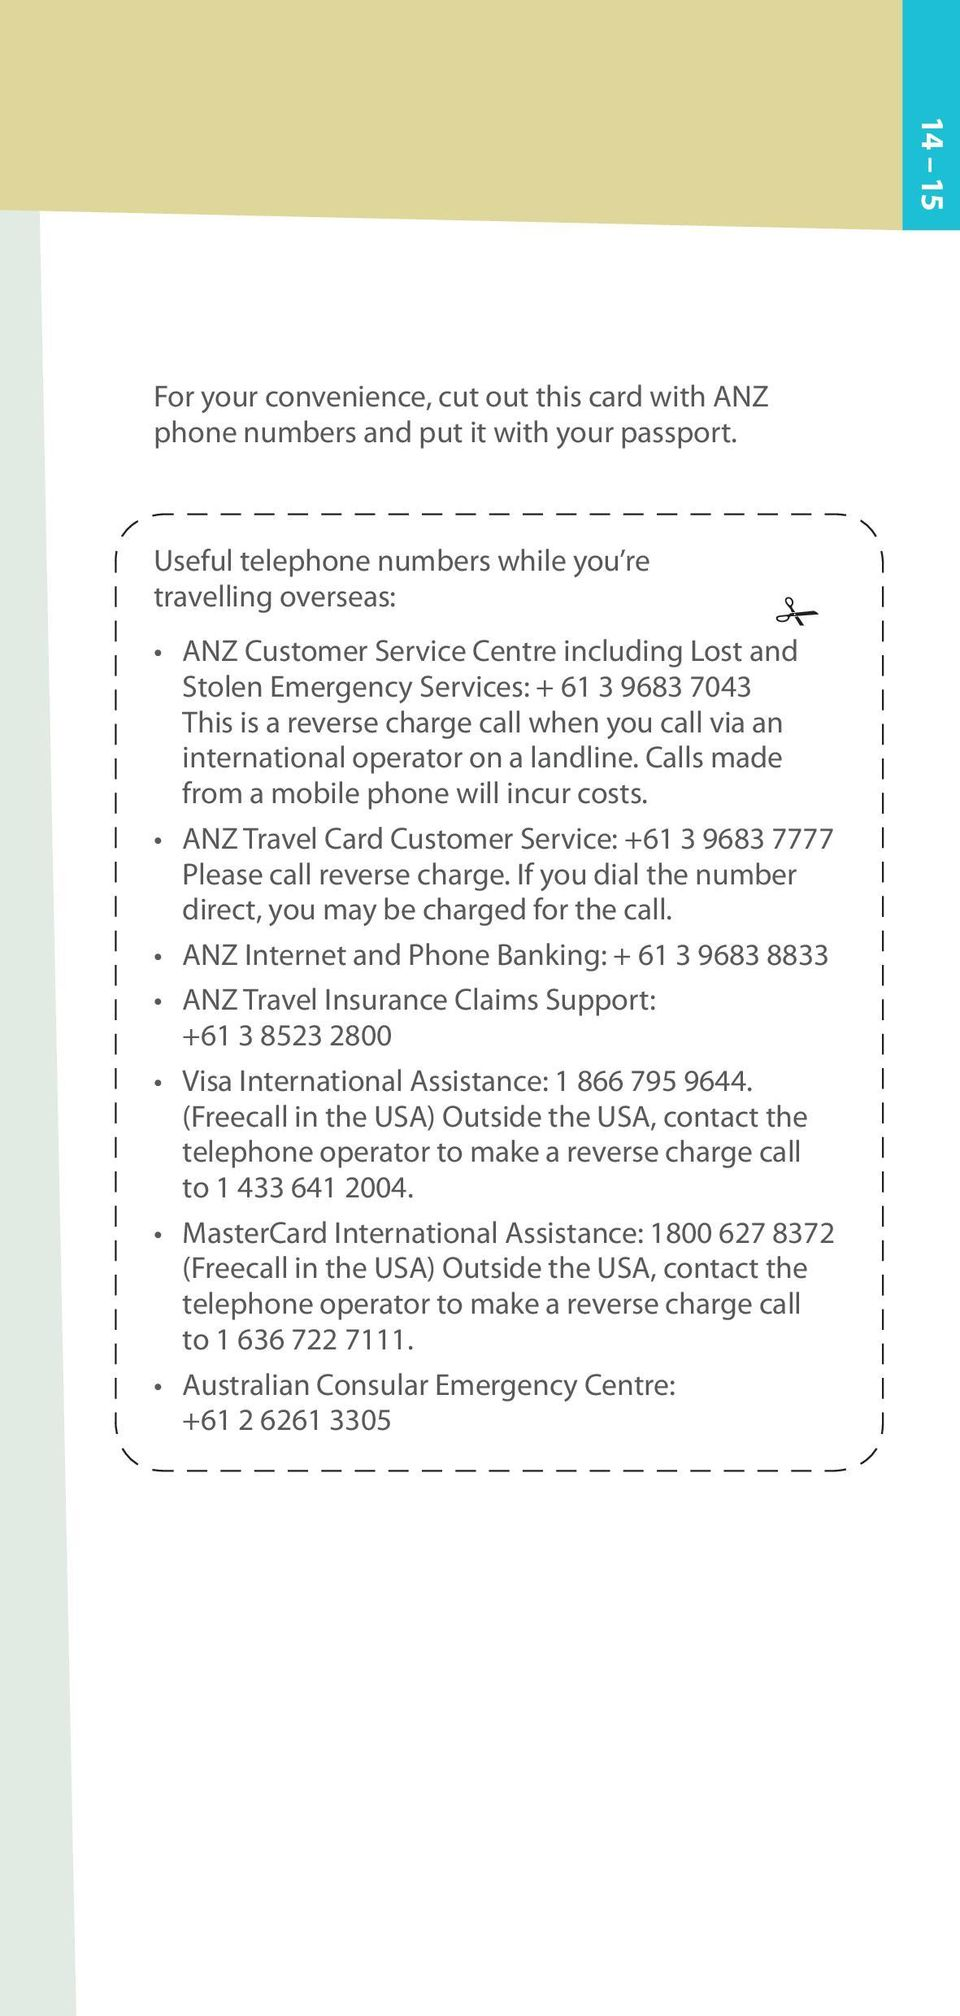 an international operator on a landline. Calls made from a mobile phone will incur costs. ANZ Travel Card Customer Service: +61 3 9683 7777 Please call reverse charge.